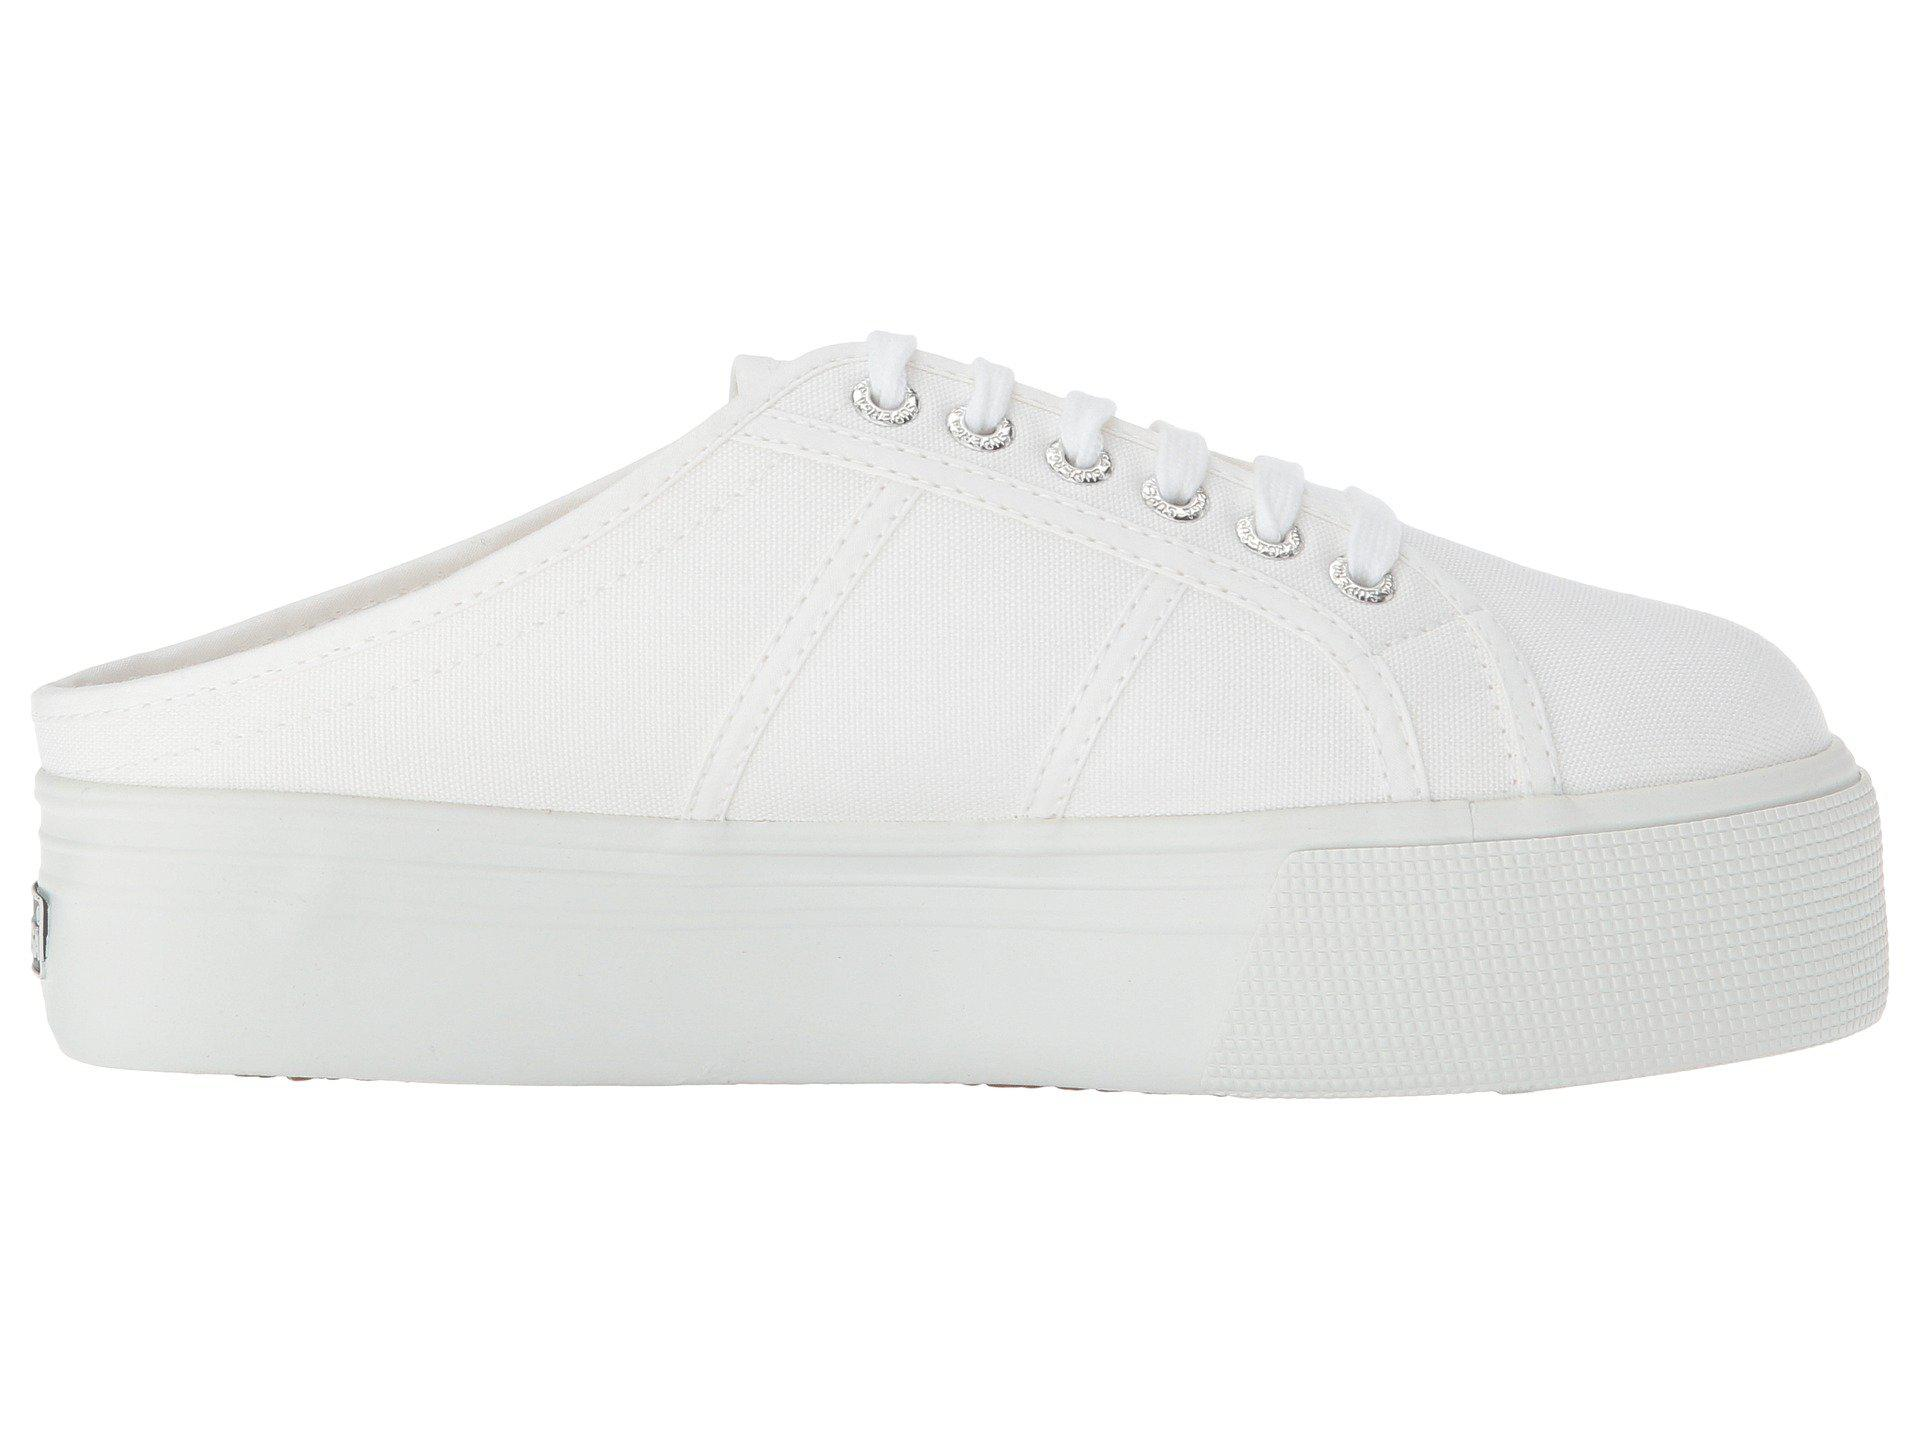 df1873fb9f77 Lyst - Superga 2284 Vcotw Platform Sneaker Mule in White - Save 5%